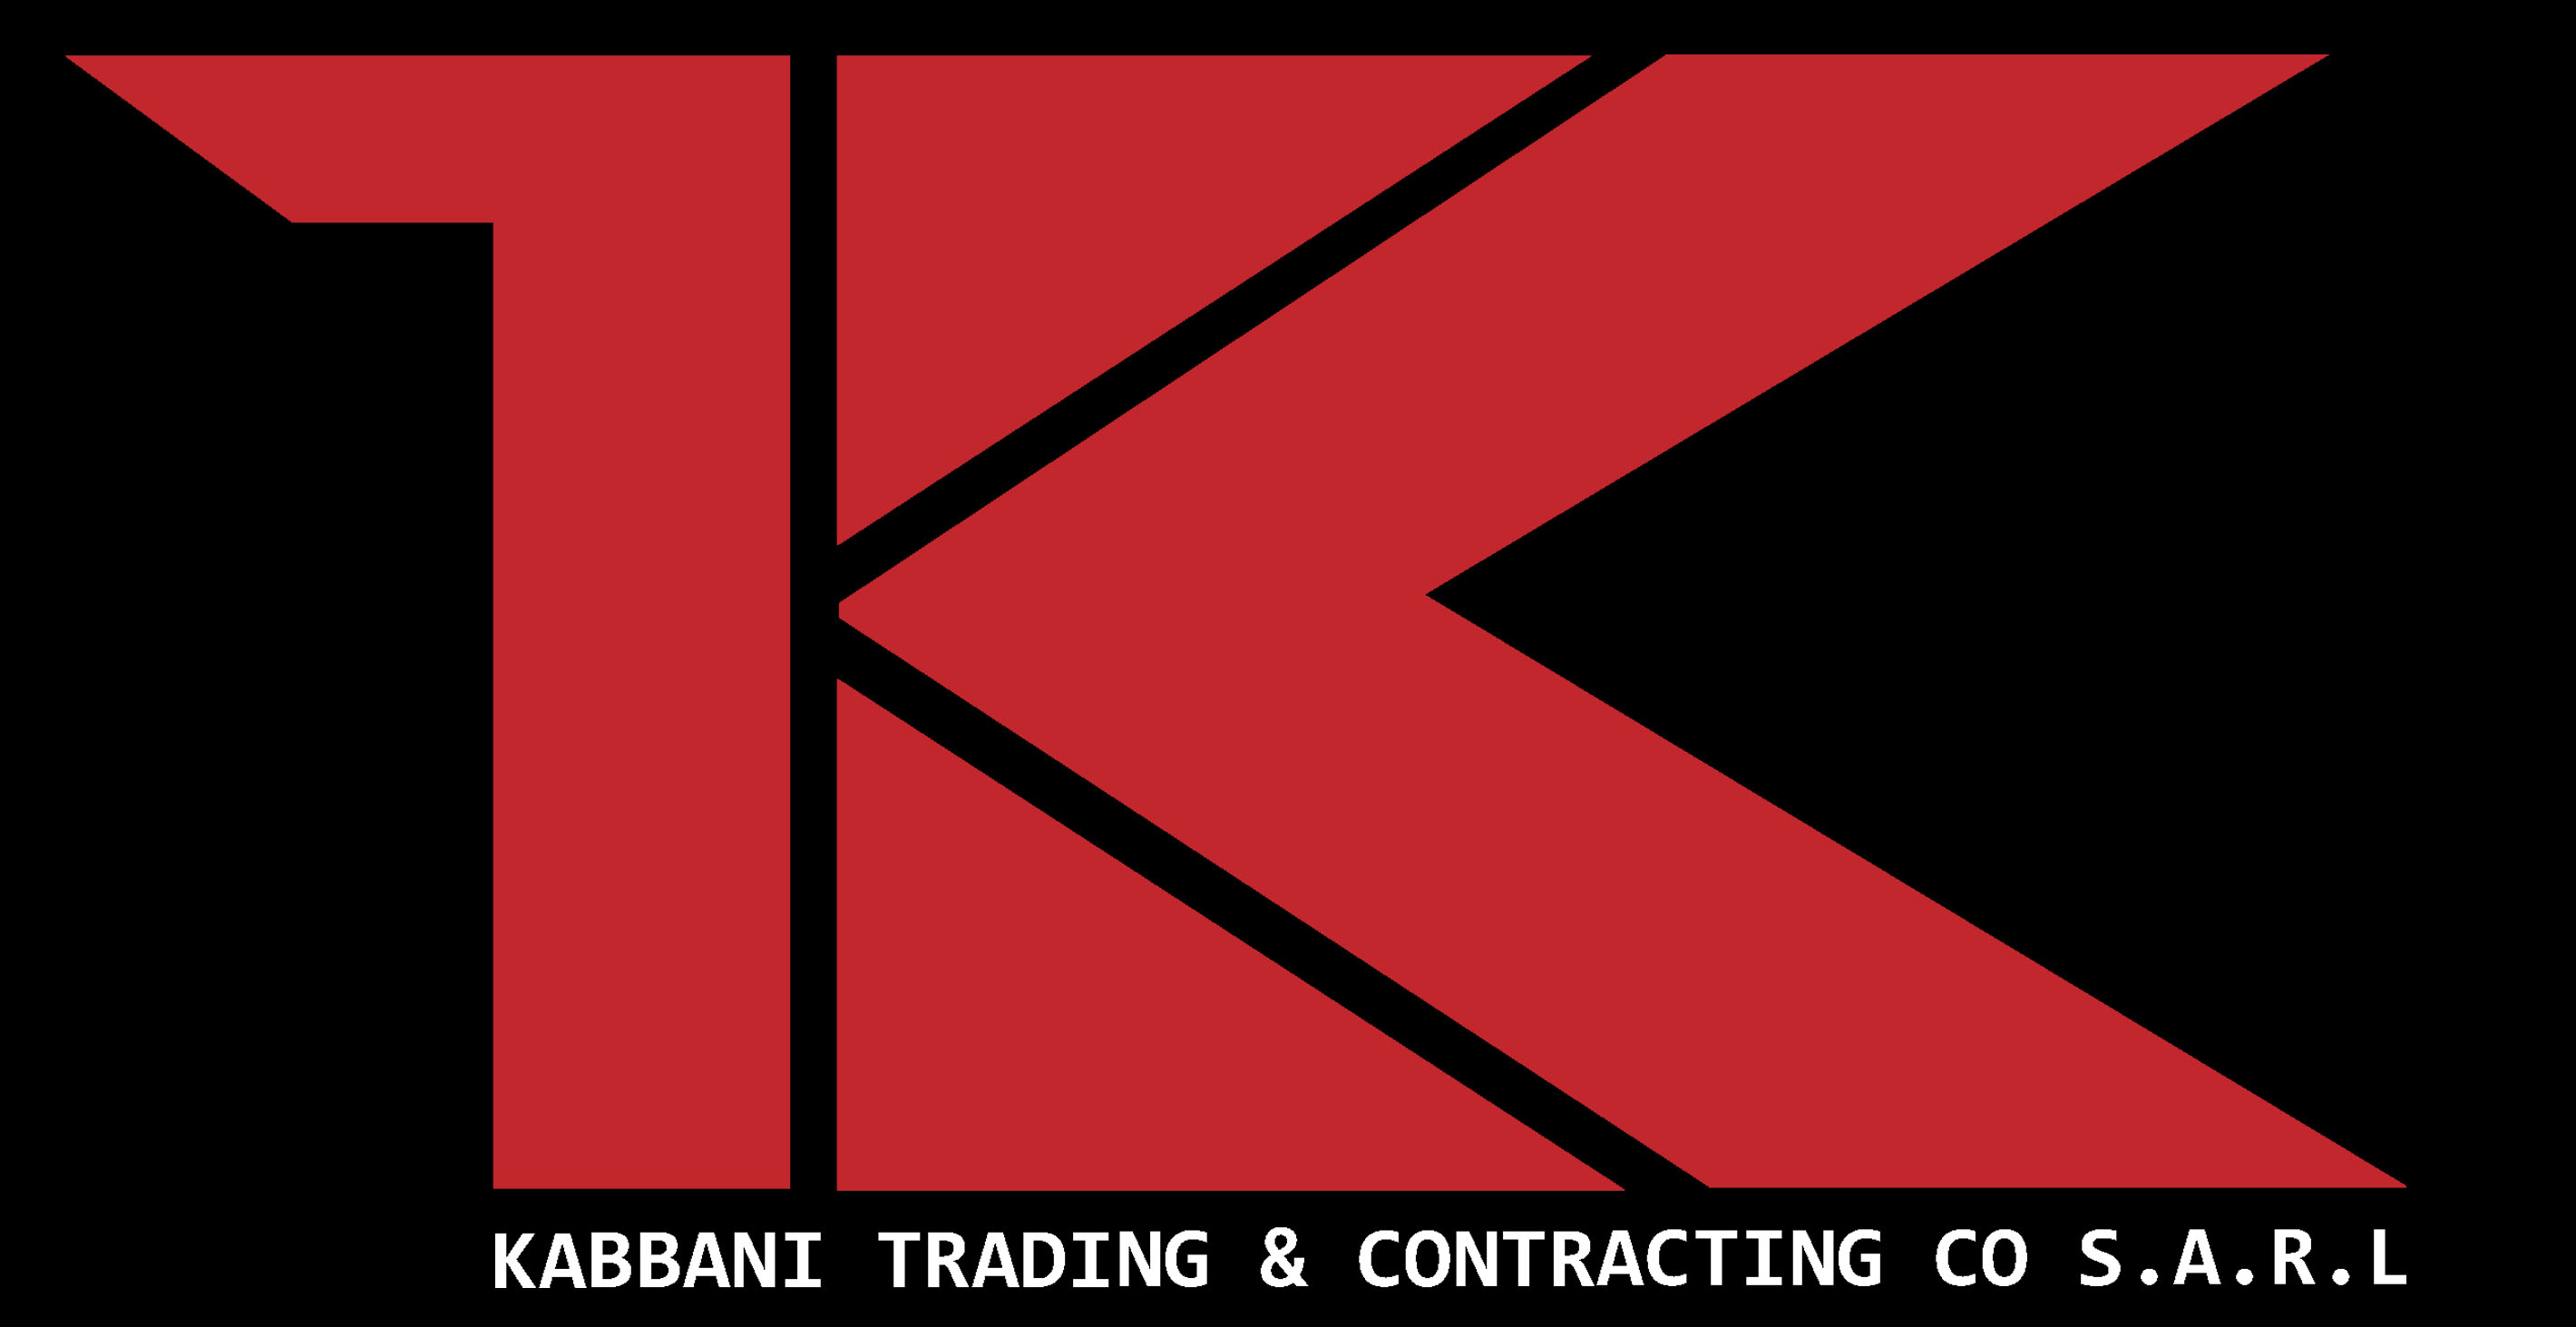 Kabbani trading & contracting co sarl